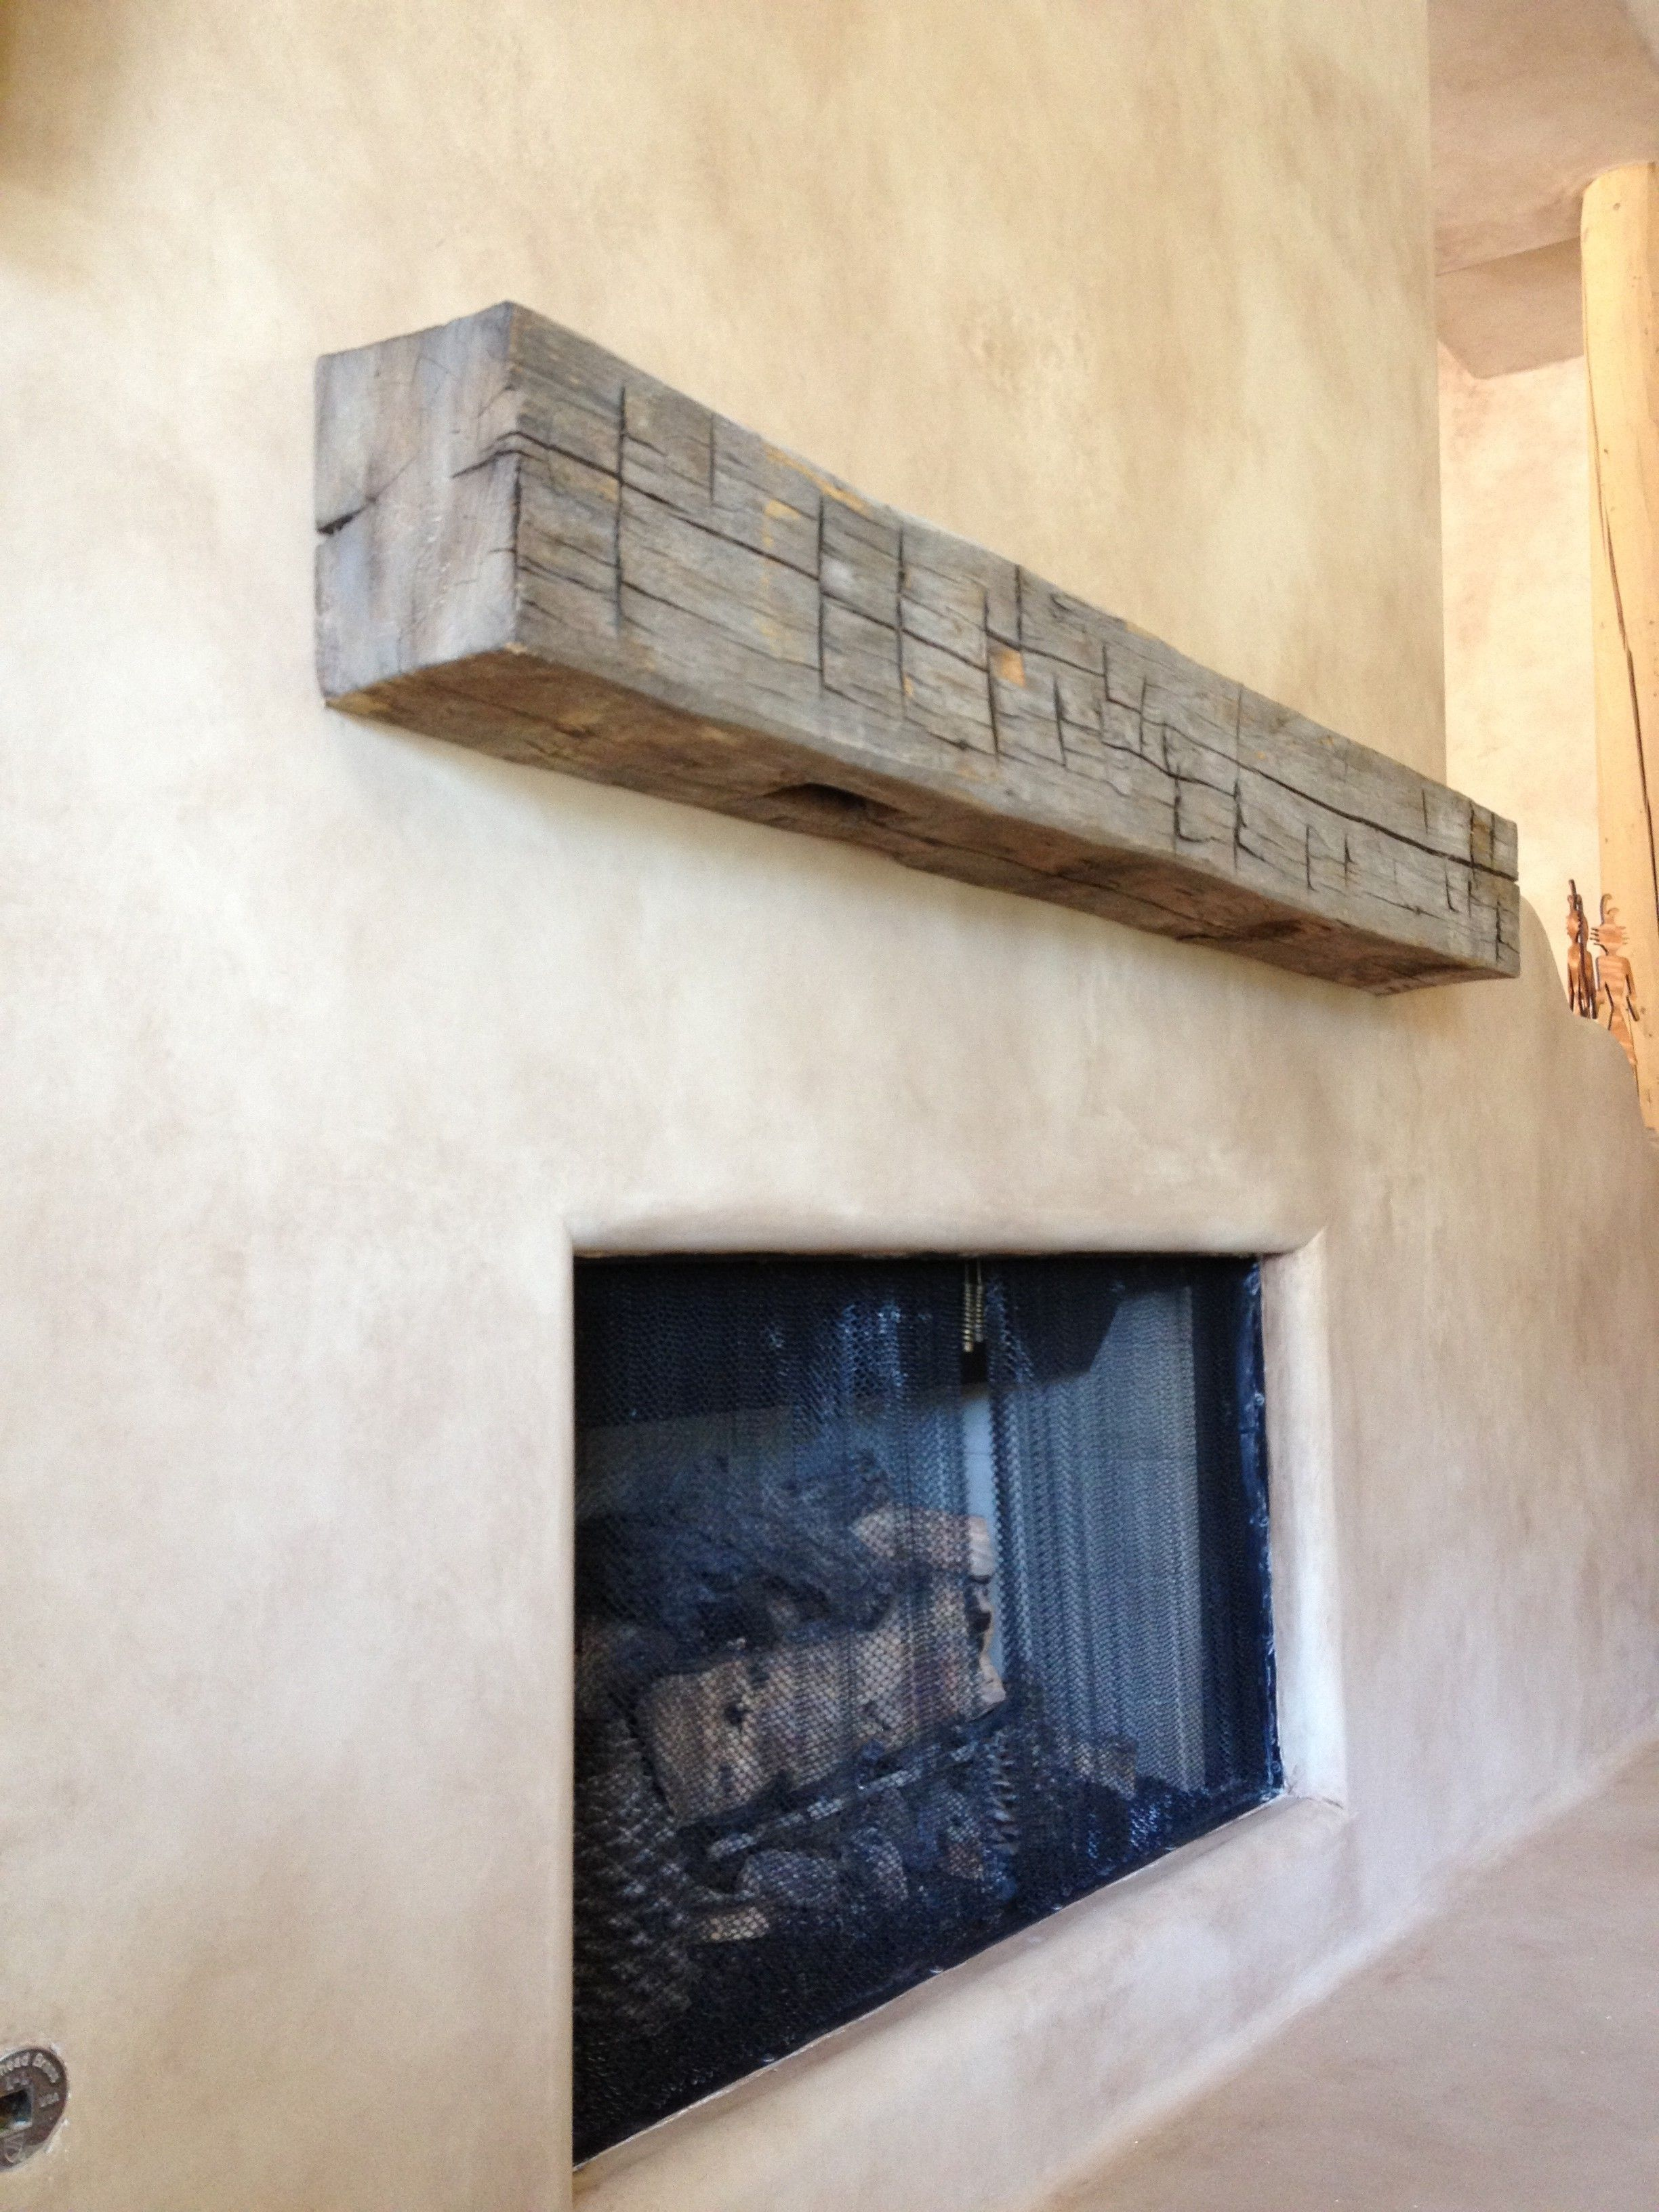 Reclaimed Beam Floating Mantel Porter Barn Wood Reclaimed Beams Wood Fireplace Mantel Wood Mantle Fireplace